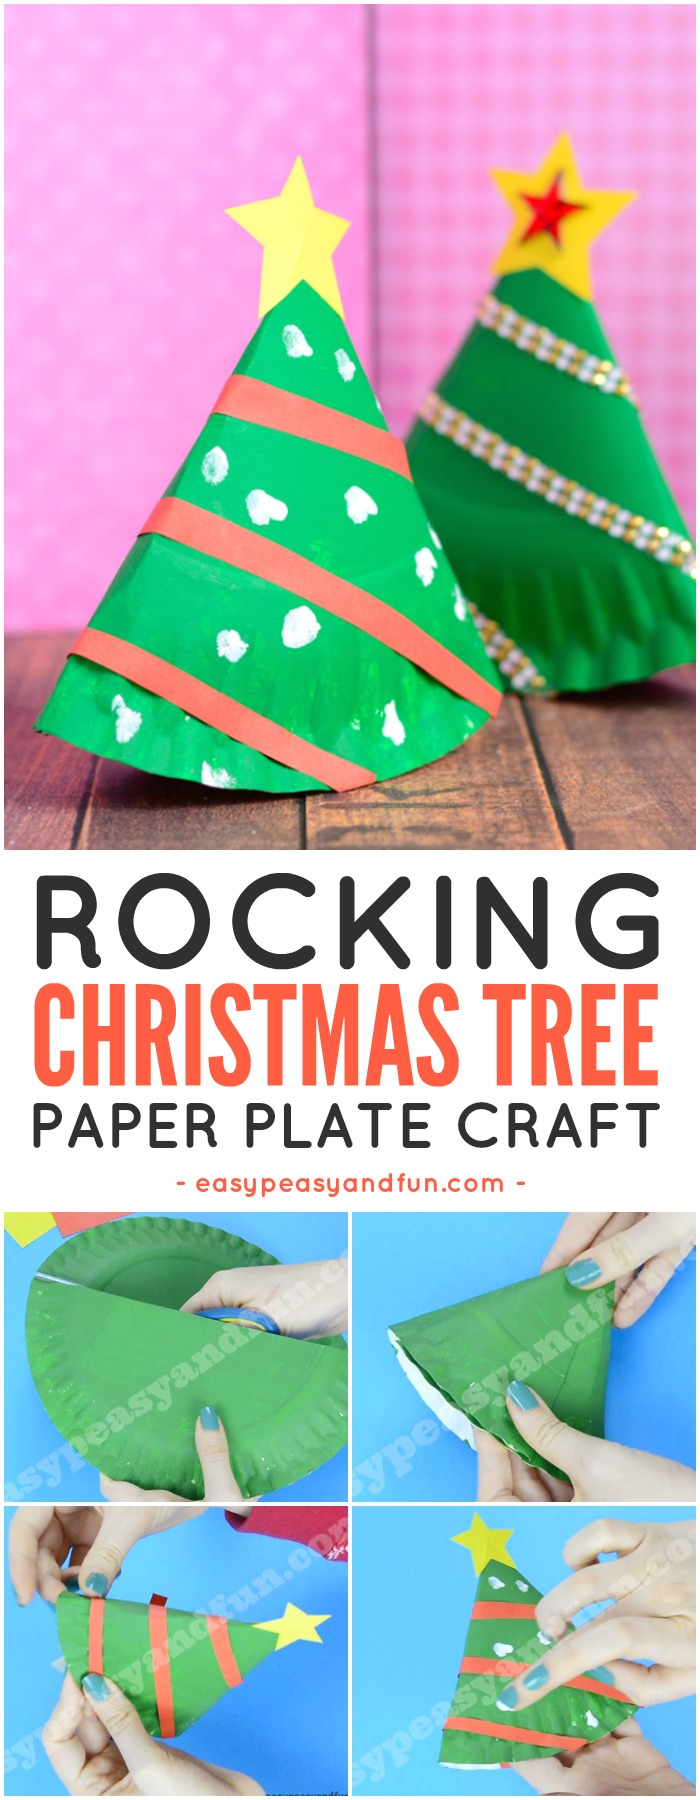 Rocking Paper Plate Christmas Tree Craft for Kids. Fun Christmas craft idea to do with kids.